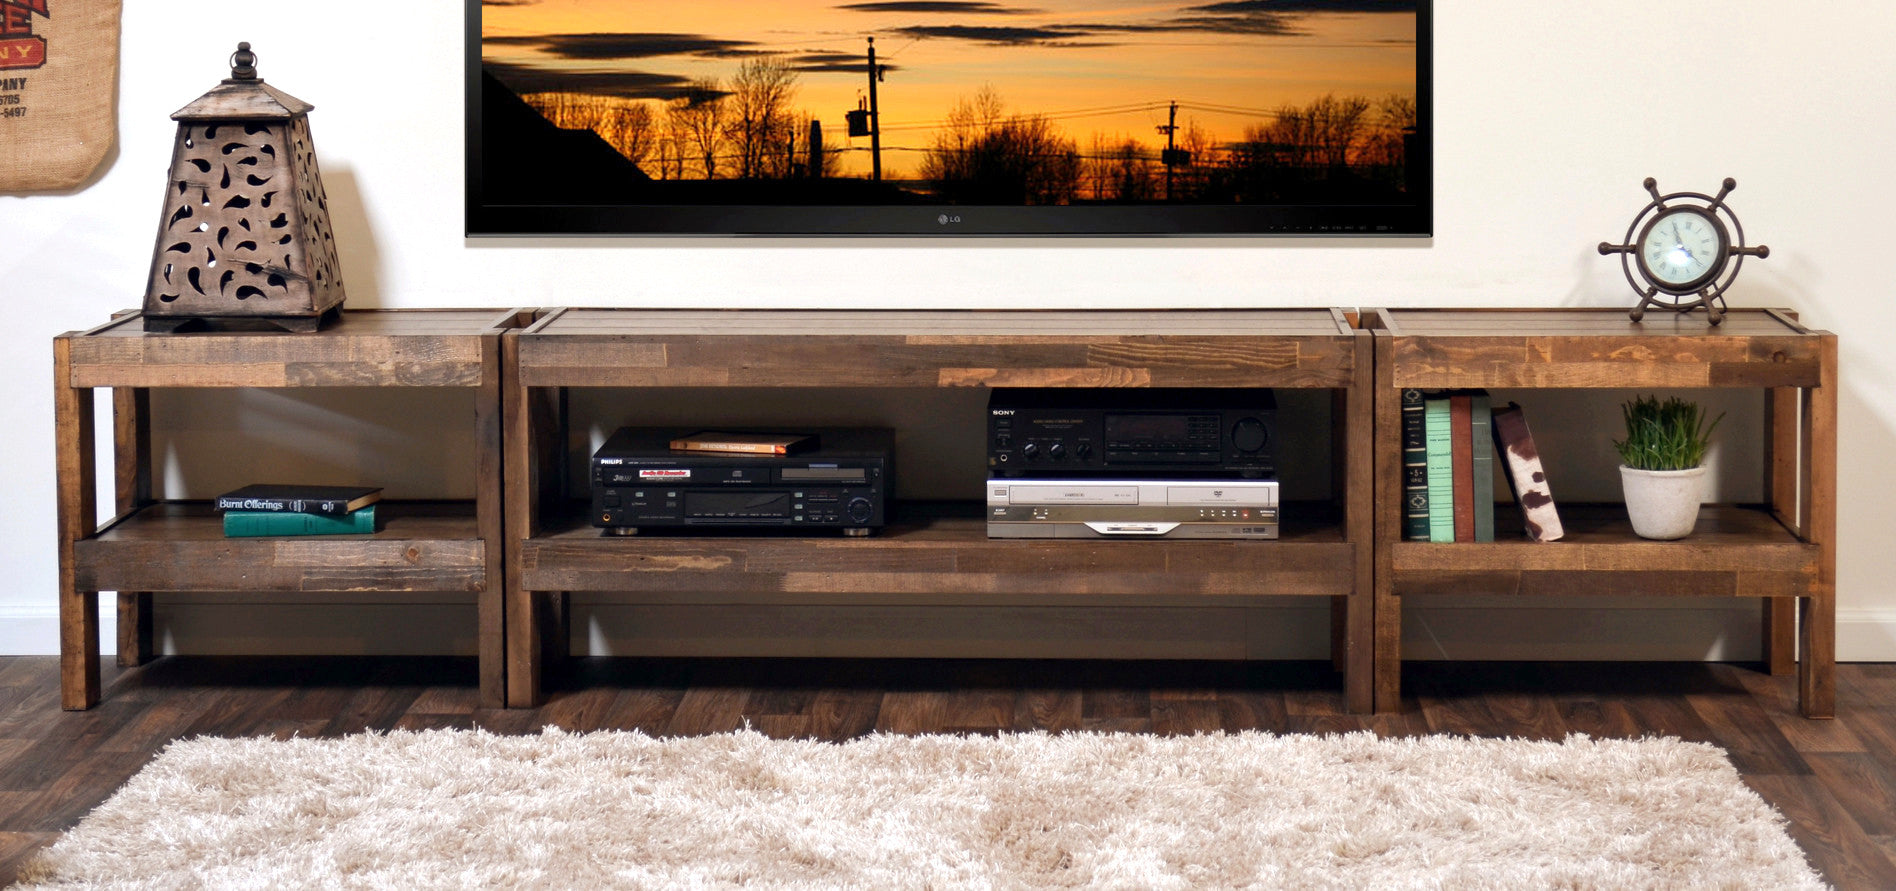 Gentil Rustic Reclaimed TV Stand Entertainment Center   PresEARTH Spice